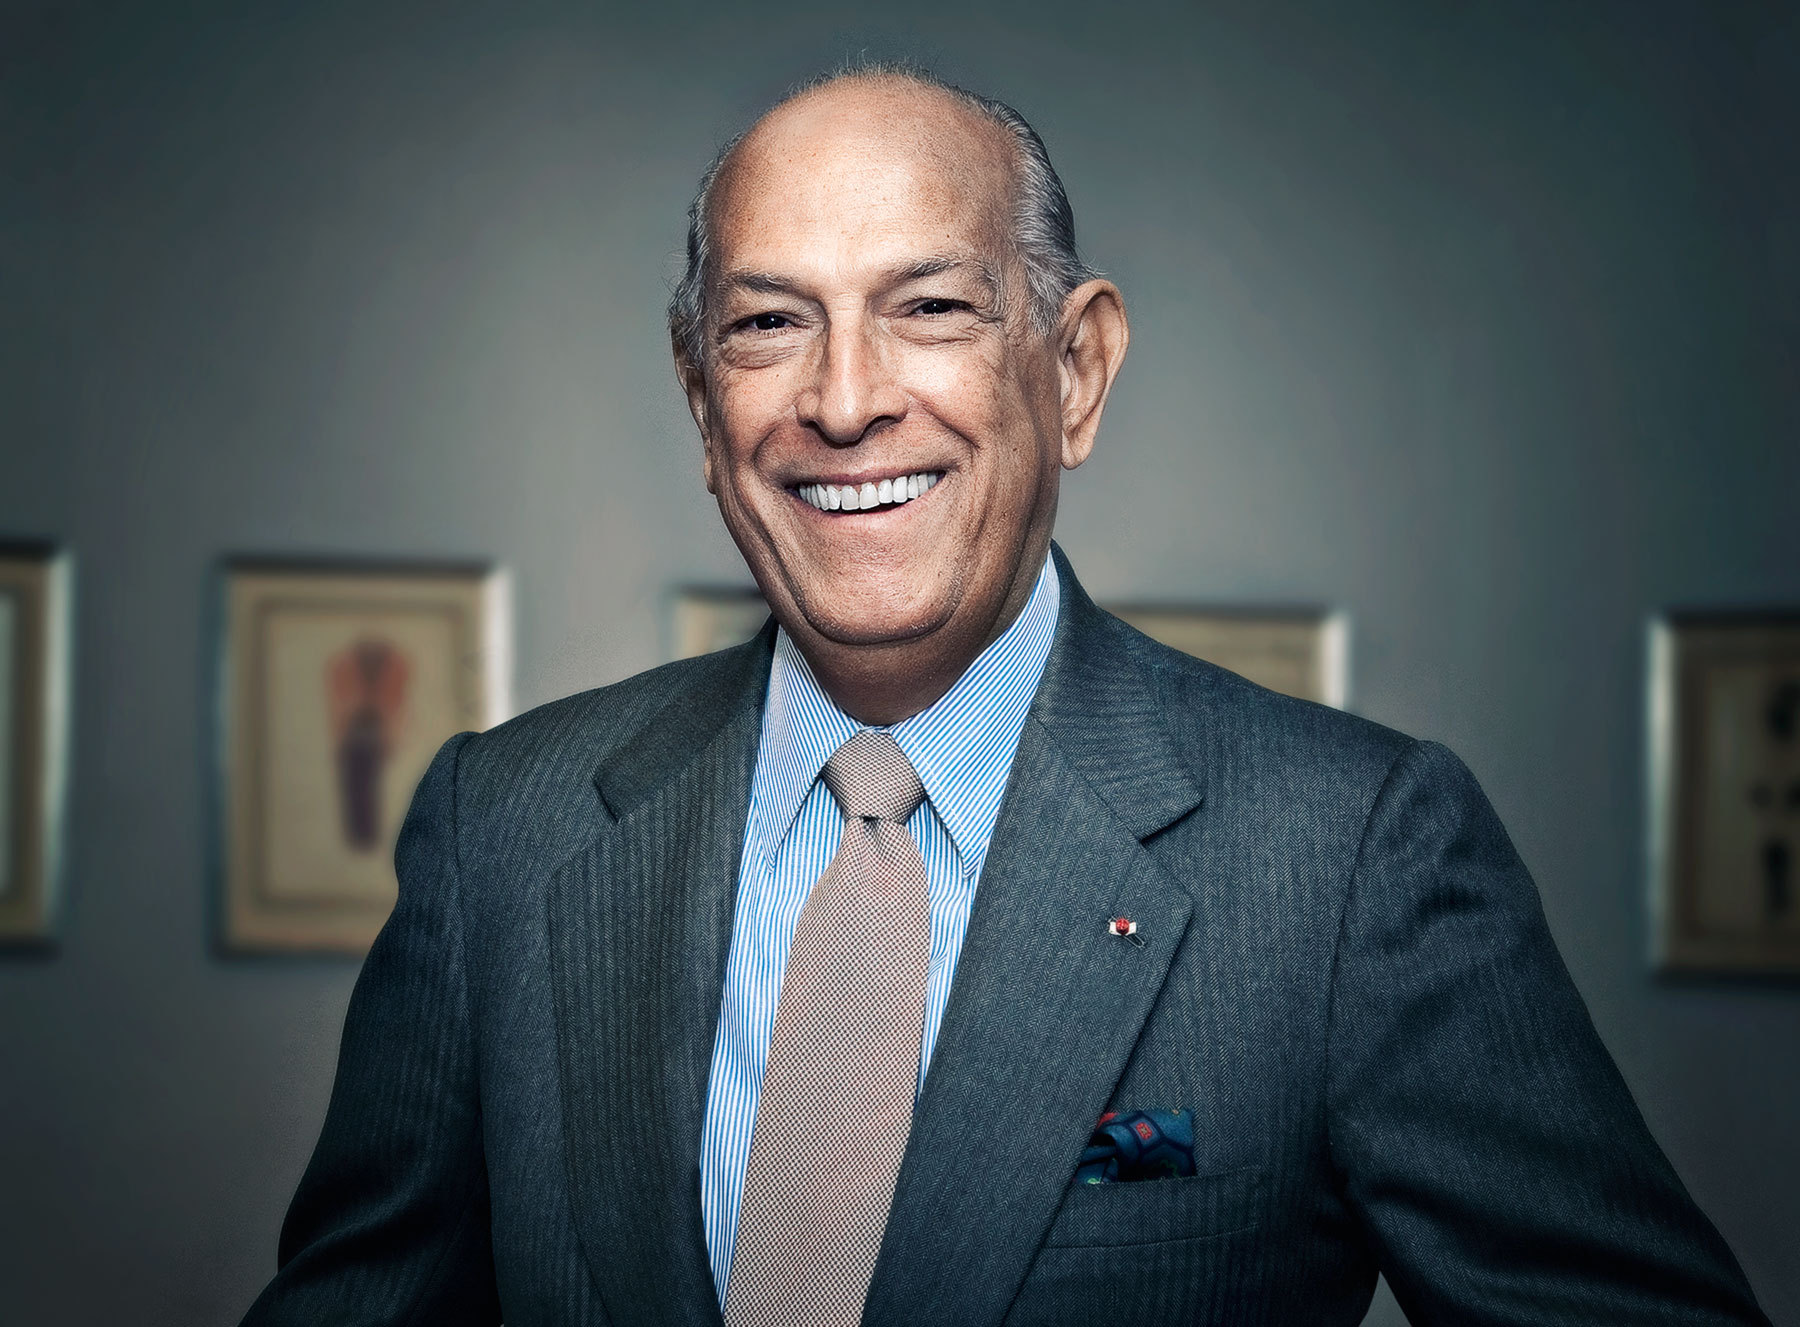 Connecticut, è morto a 82 anni Oscar de la Renta, lo stilista dominicano che ha vestito le dive di Hollywood